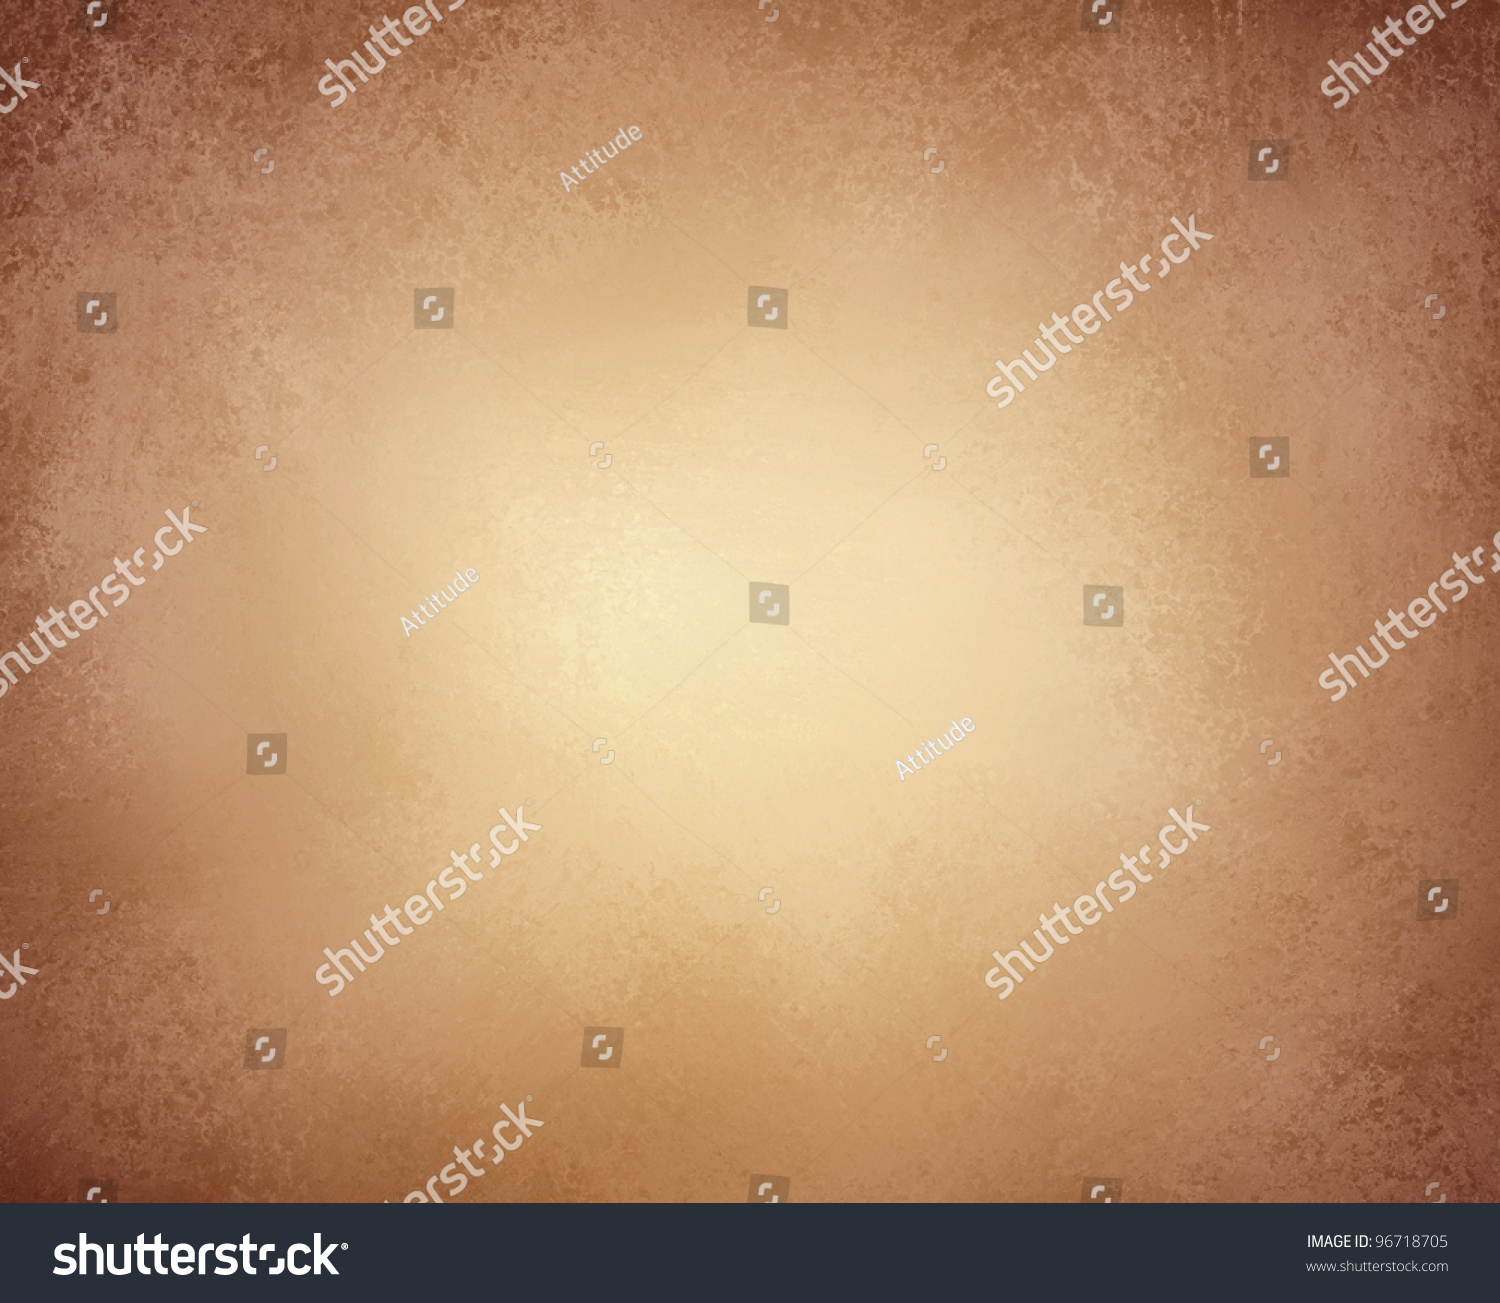 Light Brown Background Paper Or Old Stationary With Vintage Grunge Texture And Soft Faded Worn Black